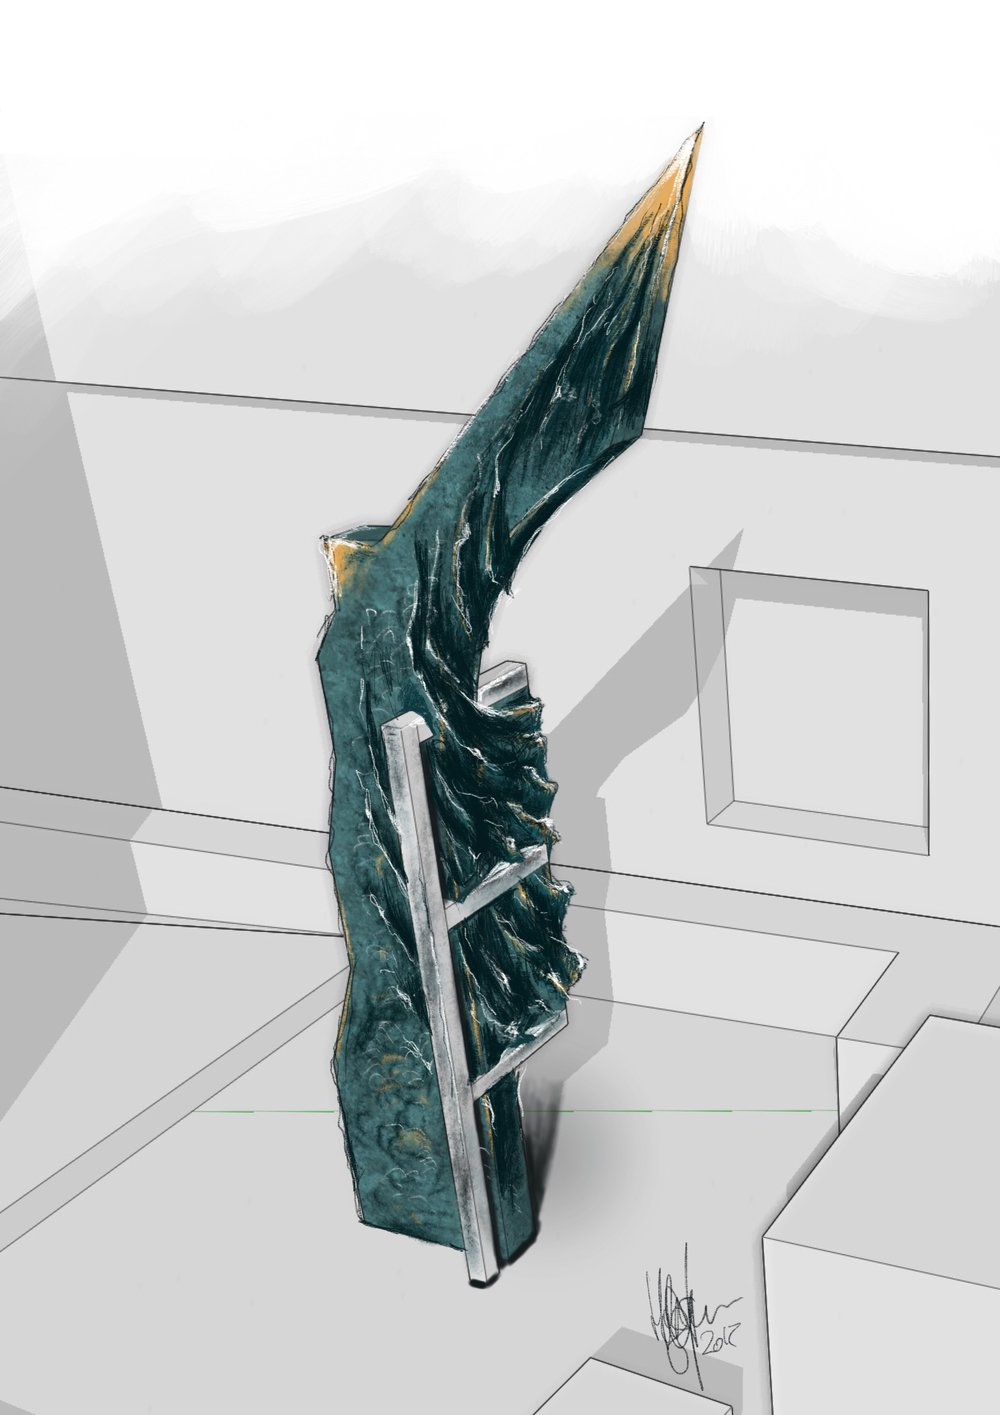 Revit® BIM image of the sculpture rendered with water-like texture